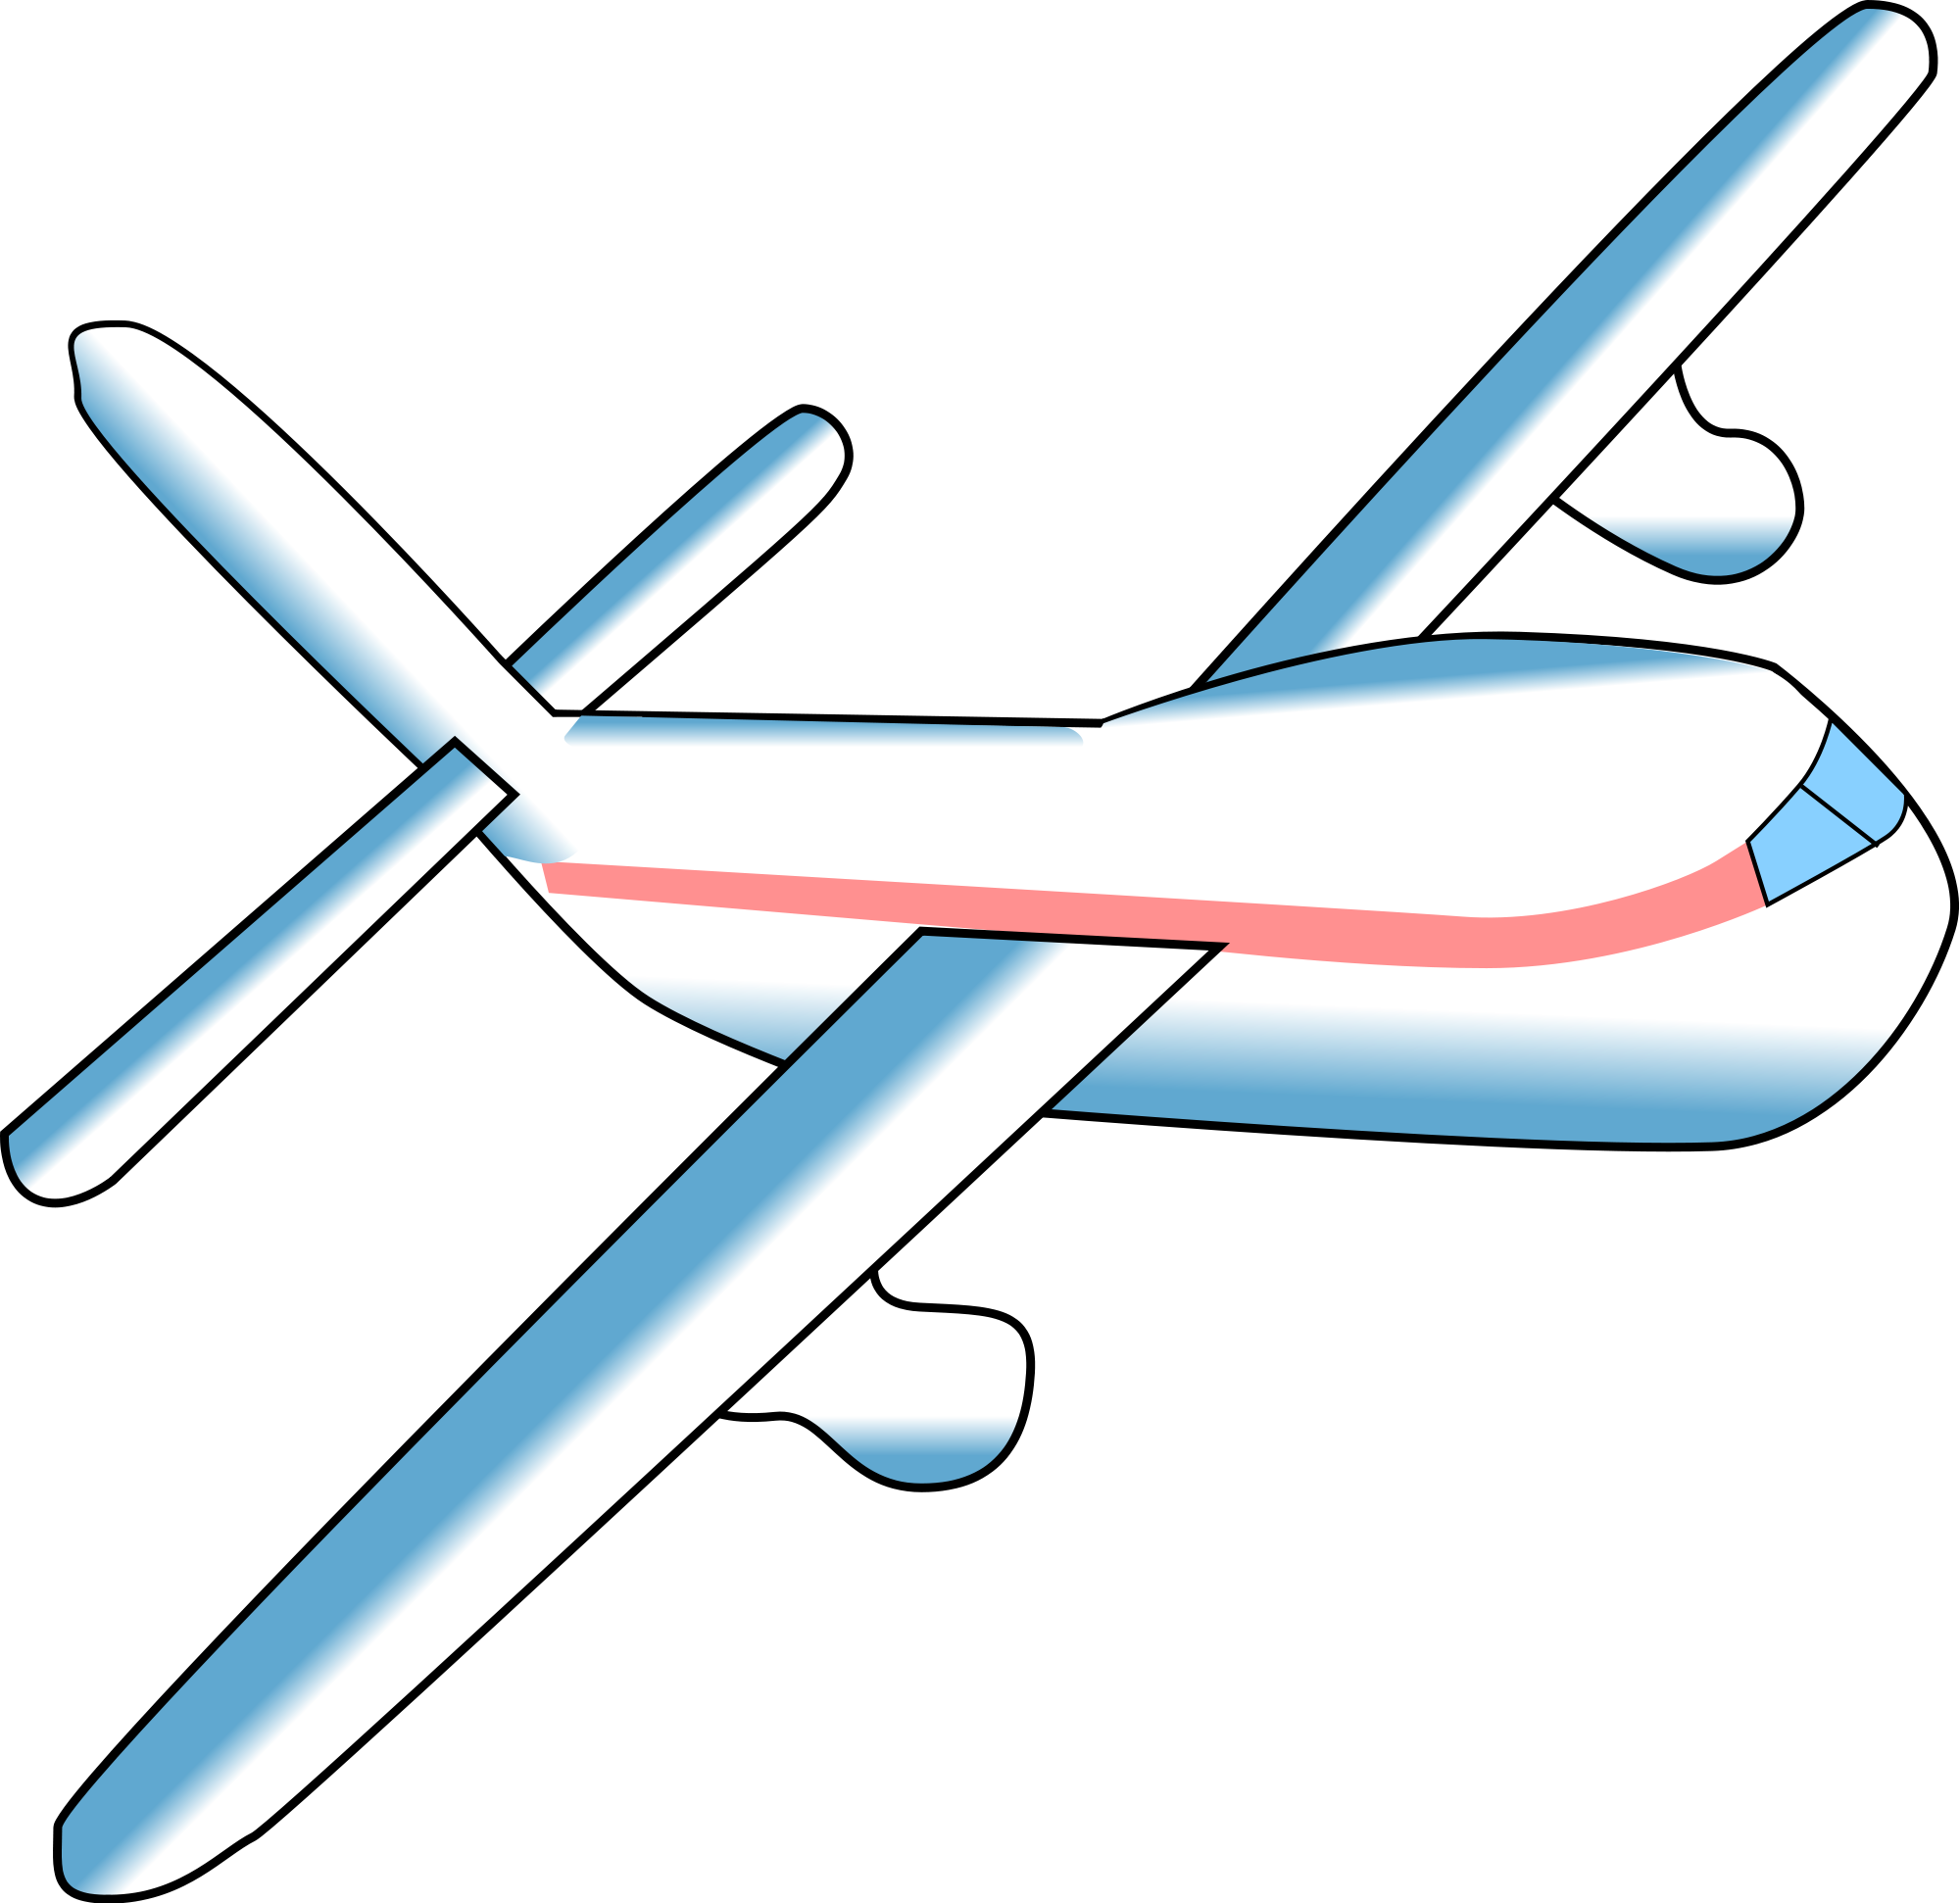 File:Airplane.svg - Wikimedia Commons